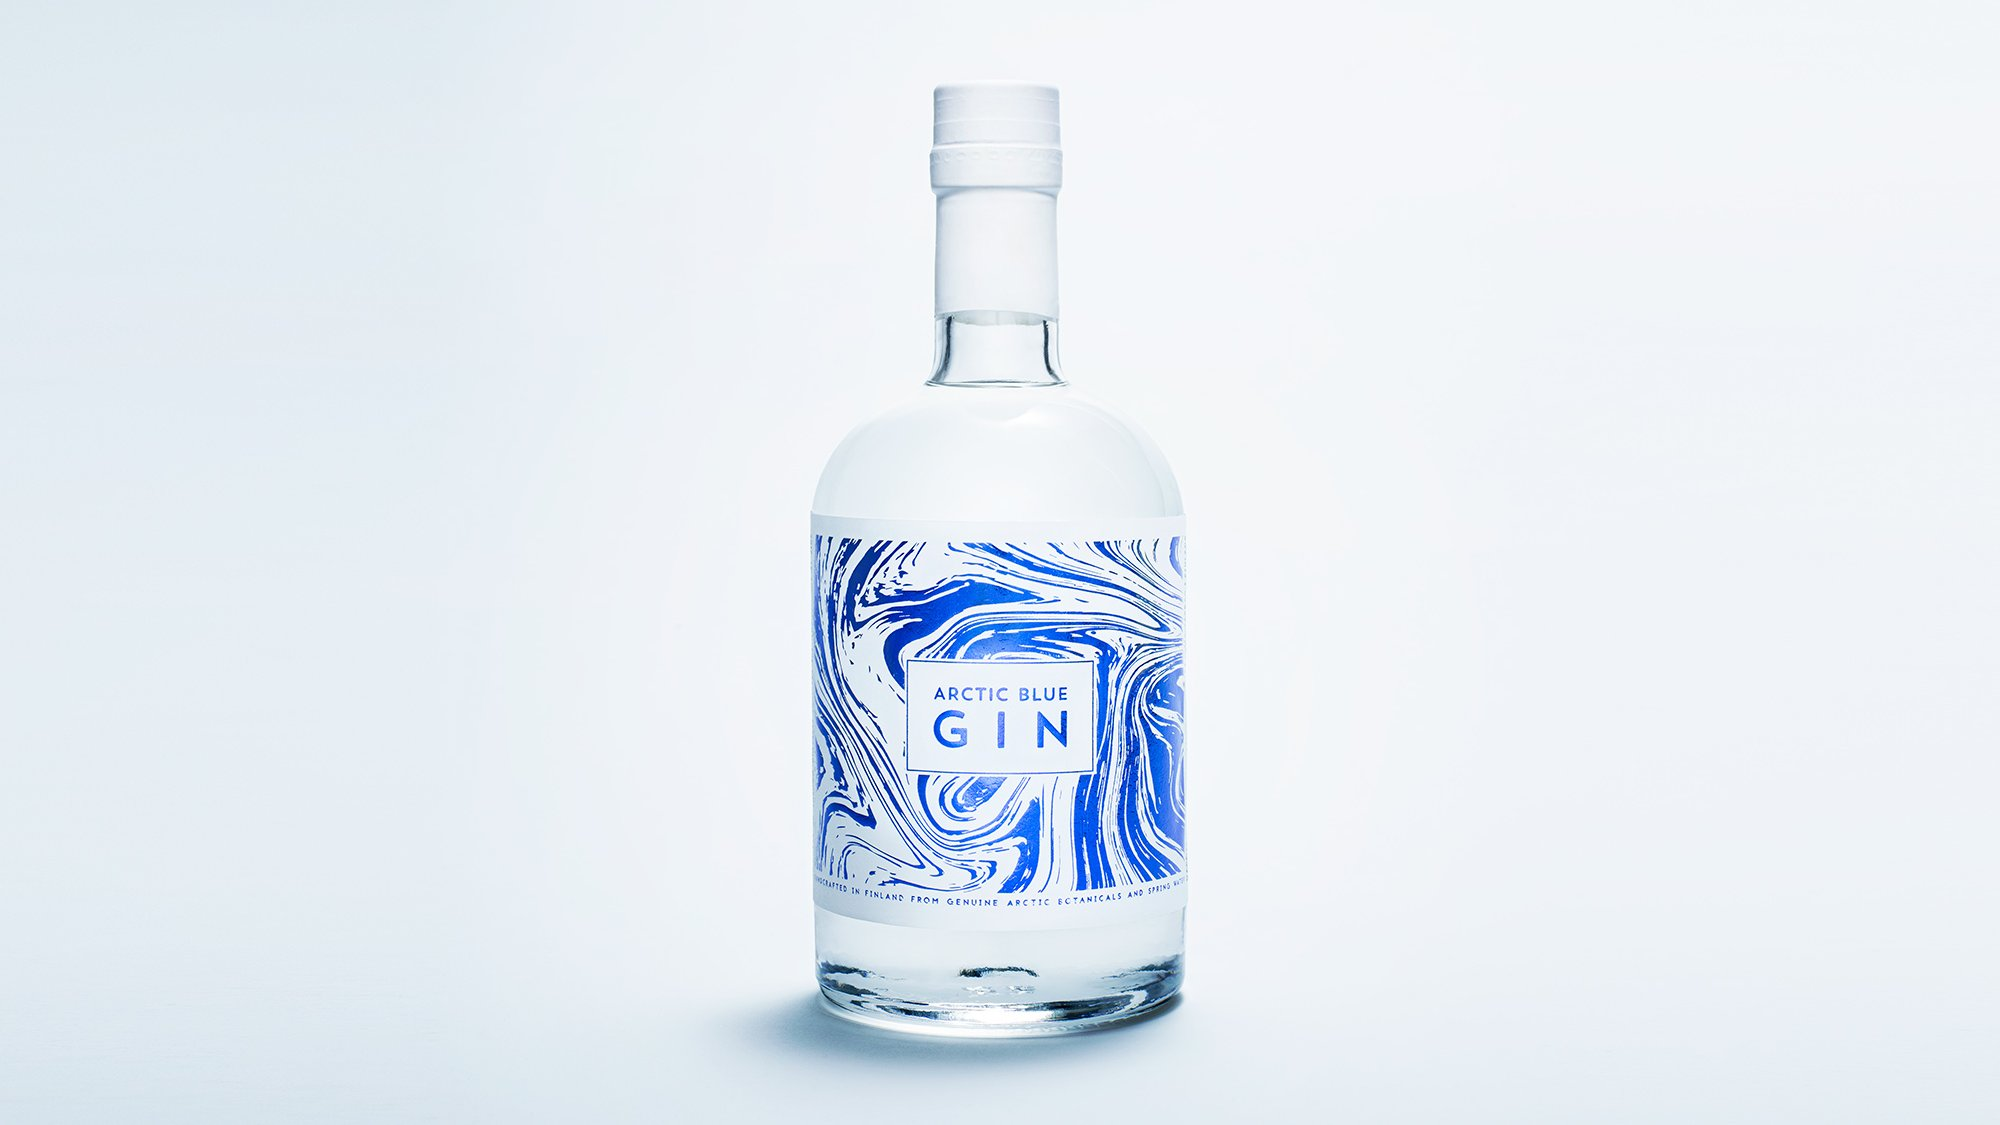 a bottle of gin